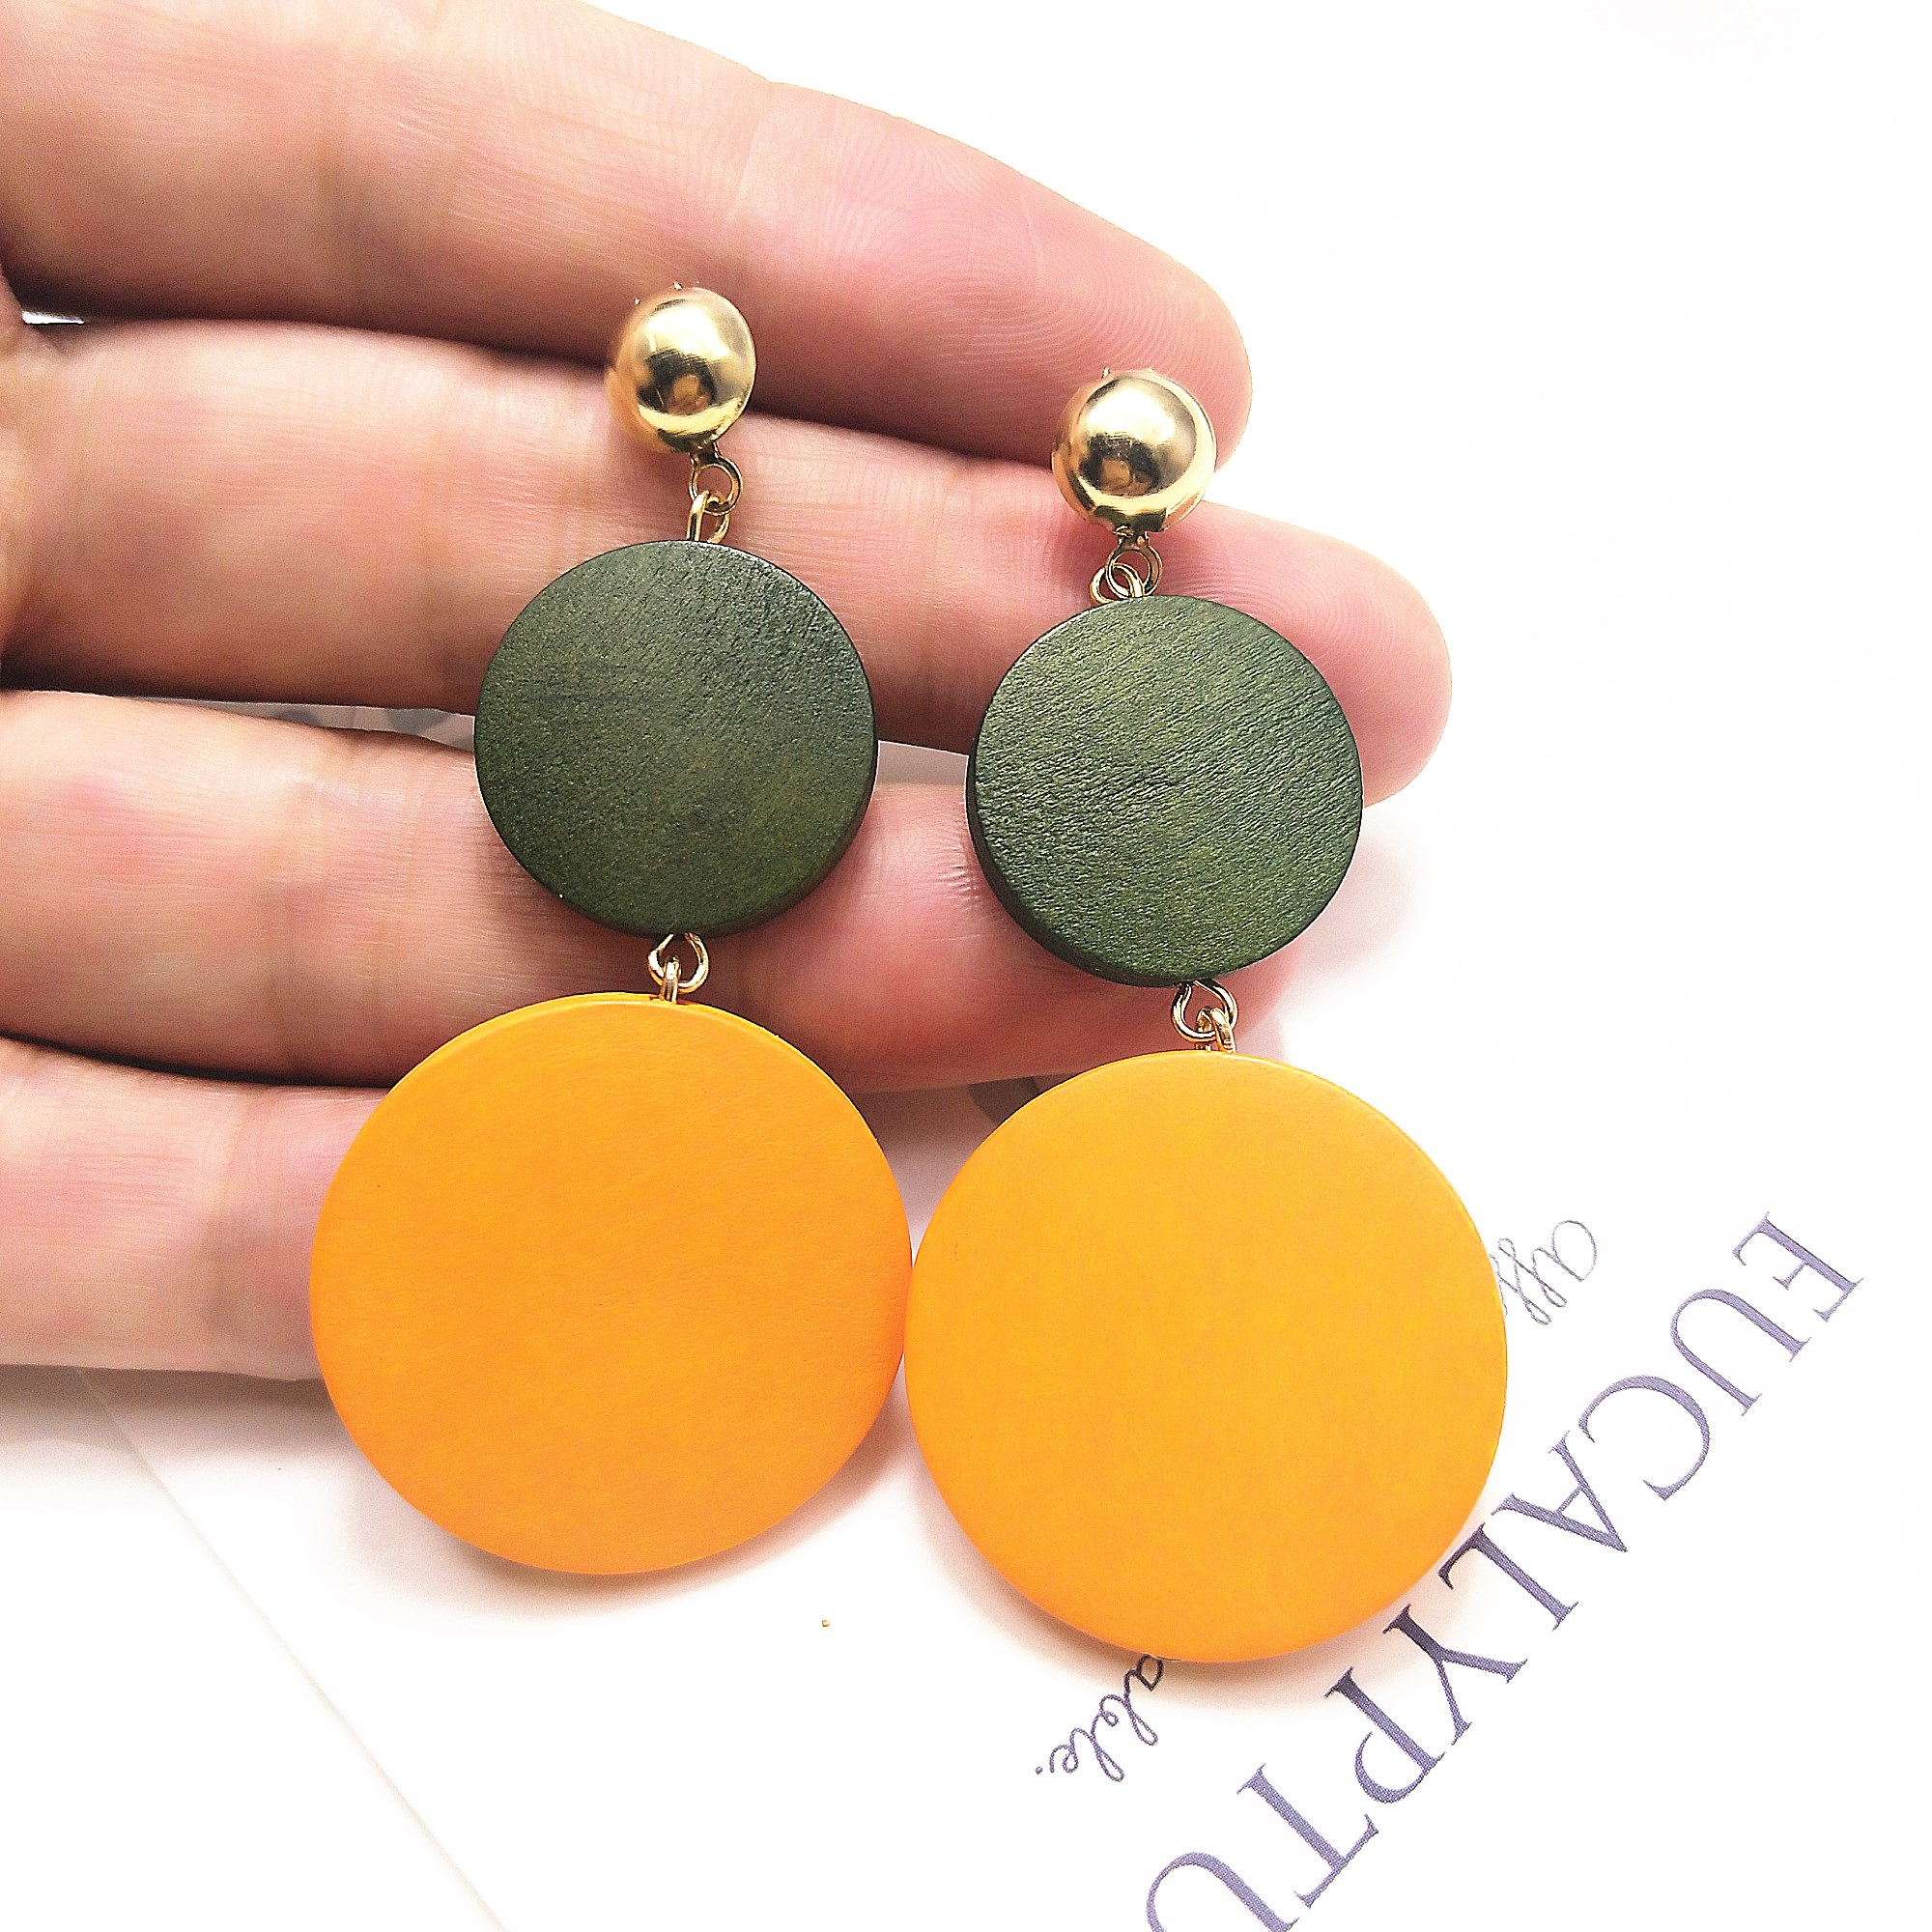 New Luxury Big Round Earrings 2019 Fashion Korean Dangle Drop Earrings For Women Long Gold Statement Earrings